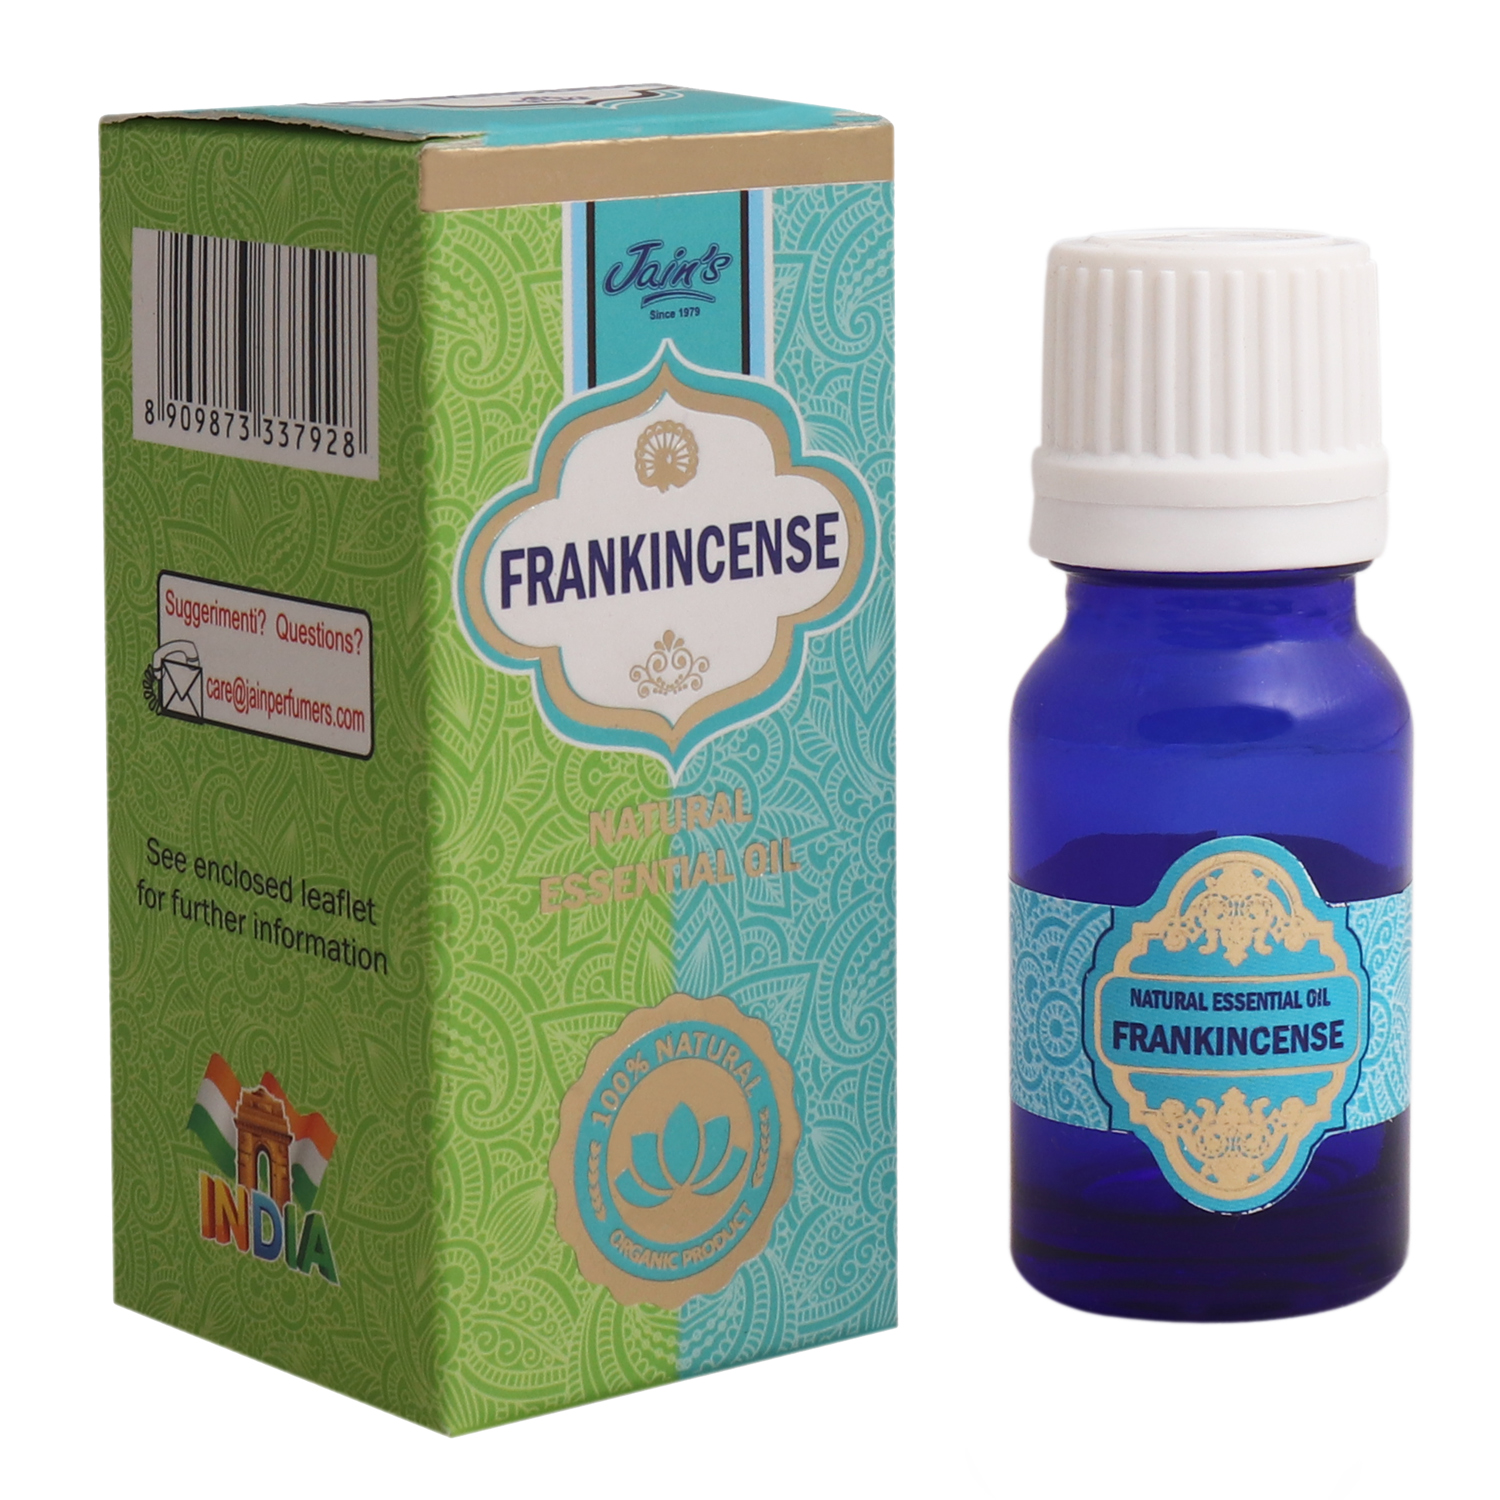 FRANK INCENSE ESSENTIAL OIL